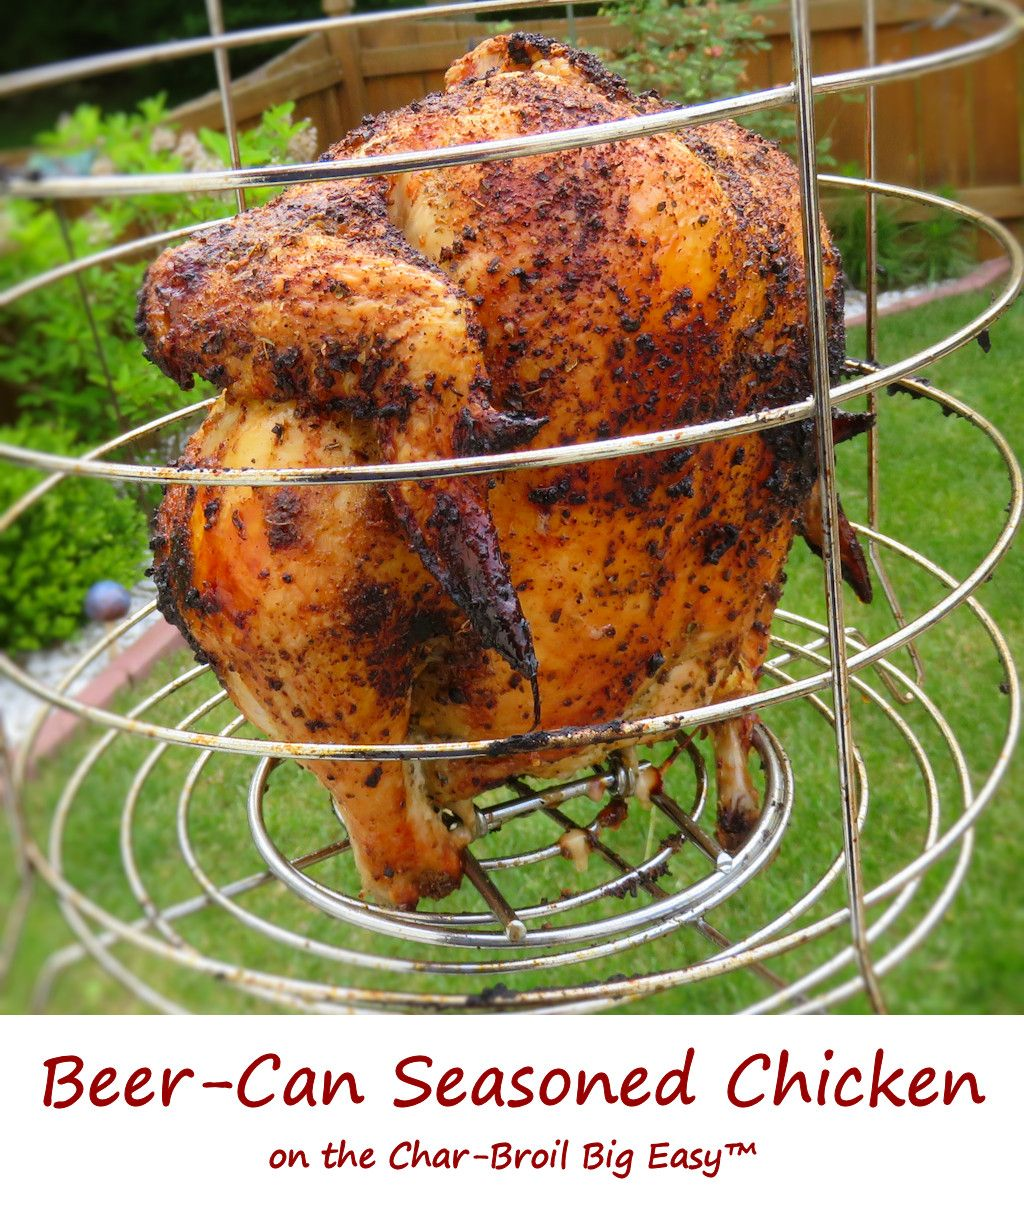 Beer-Can Seasoned Chicken on the Char-Broil Big Easy